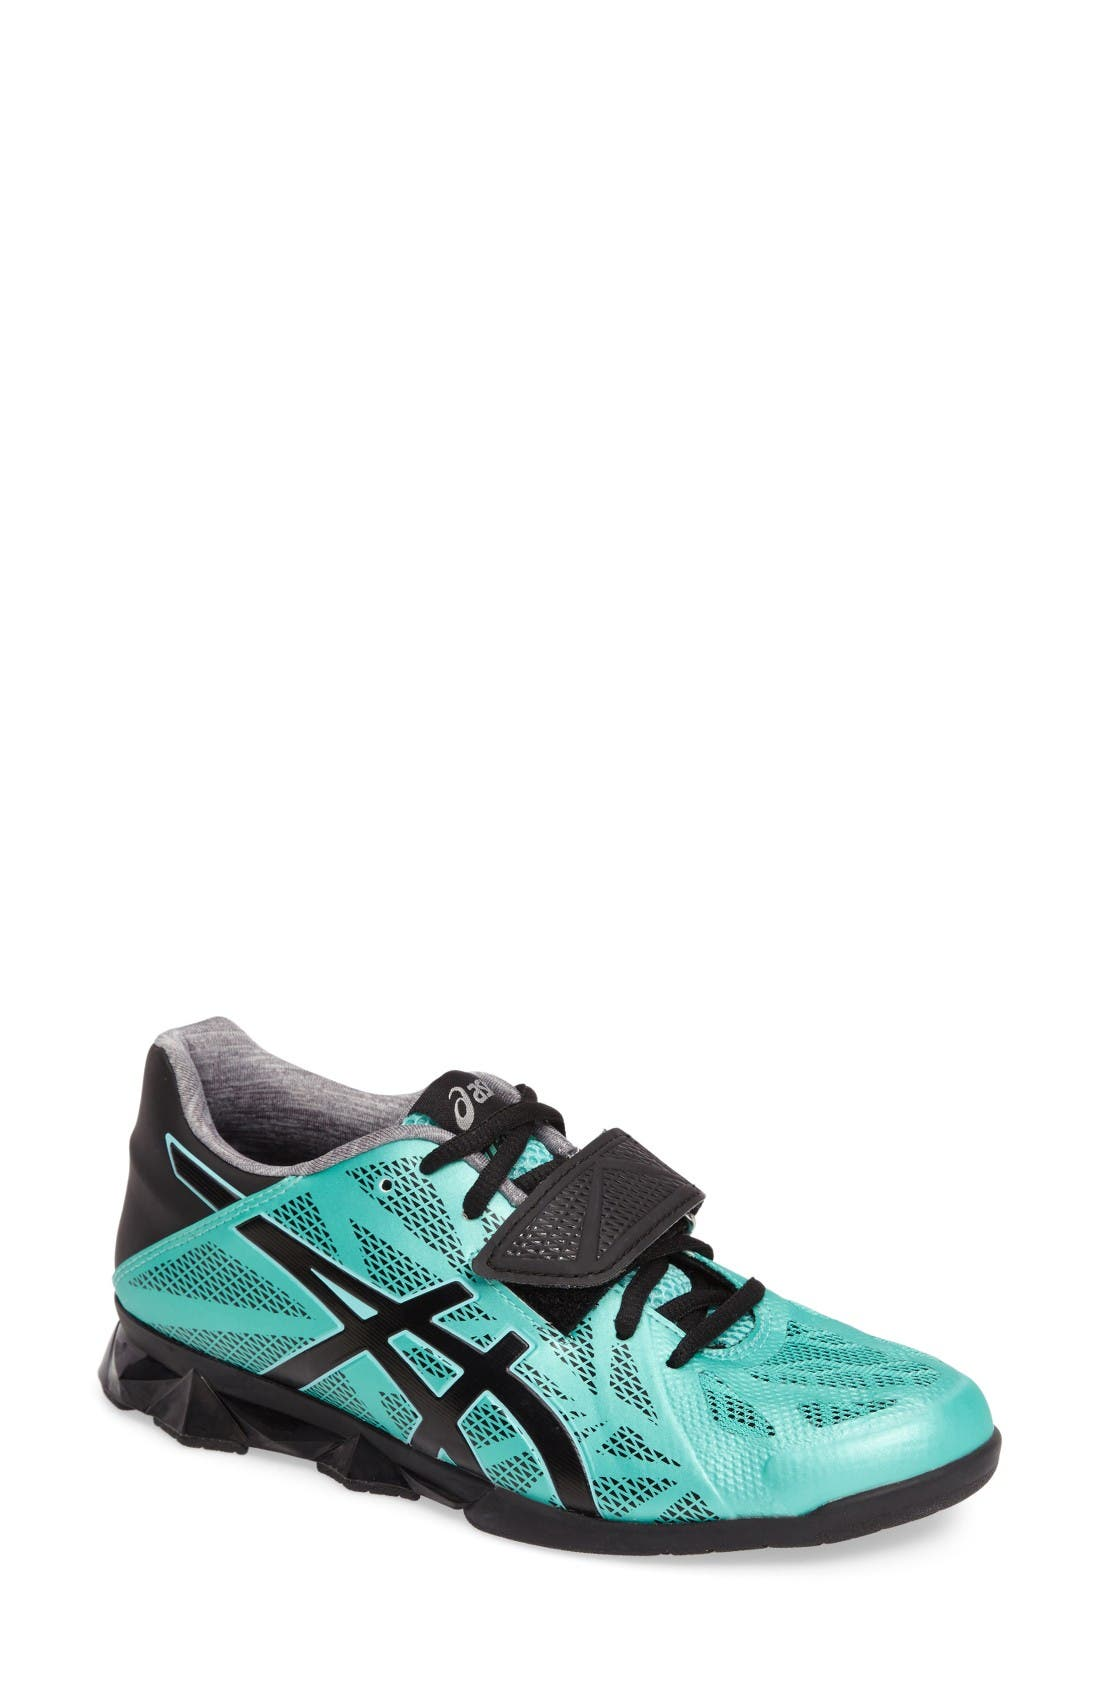 Alternate Image 1 Selected - ASICS® Lift Master Lite Training Shoe (Women)